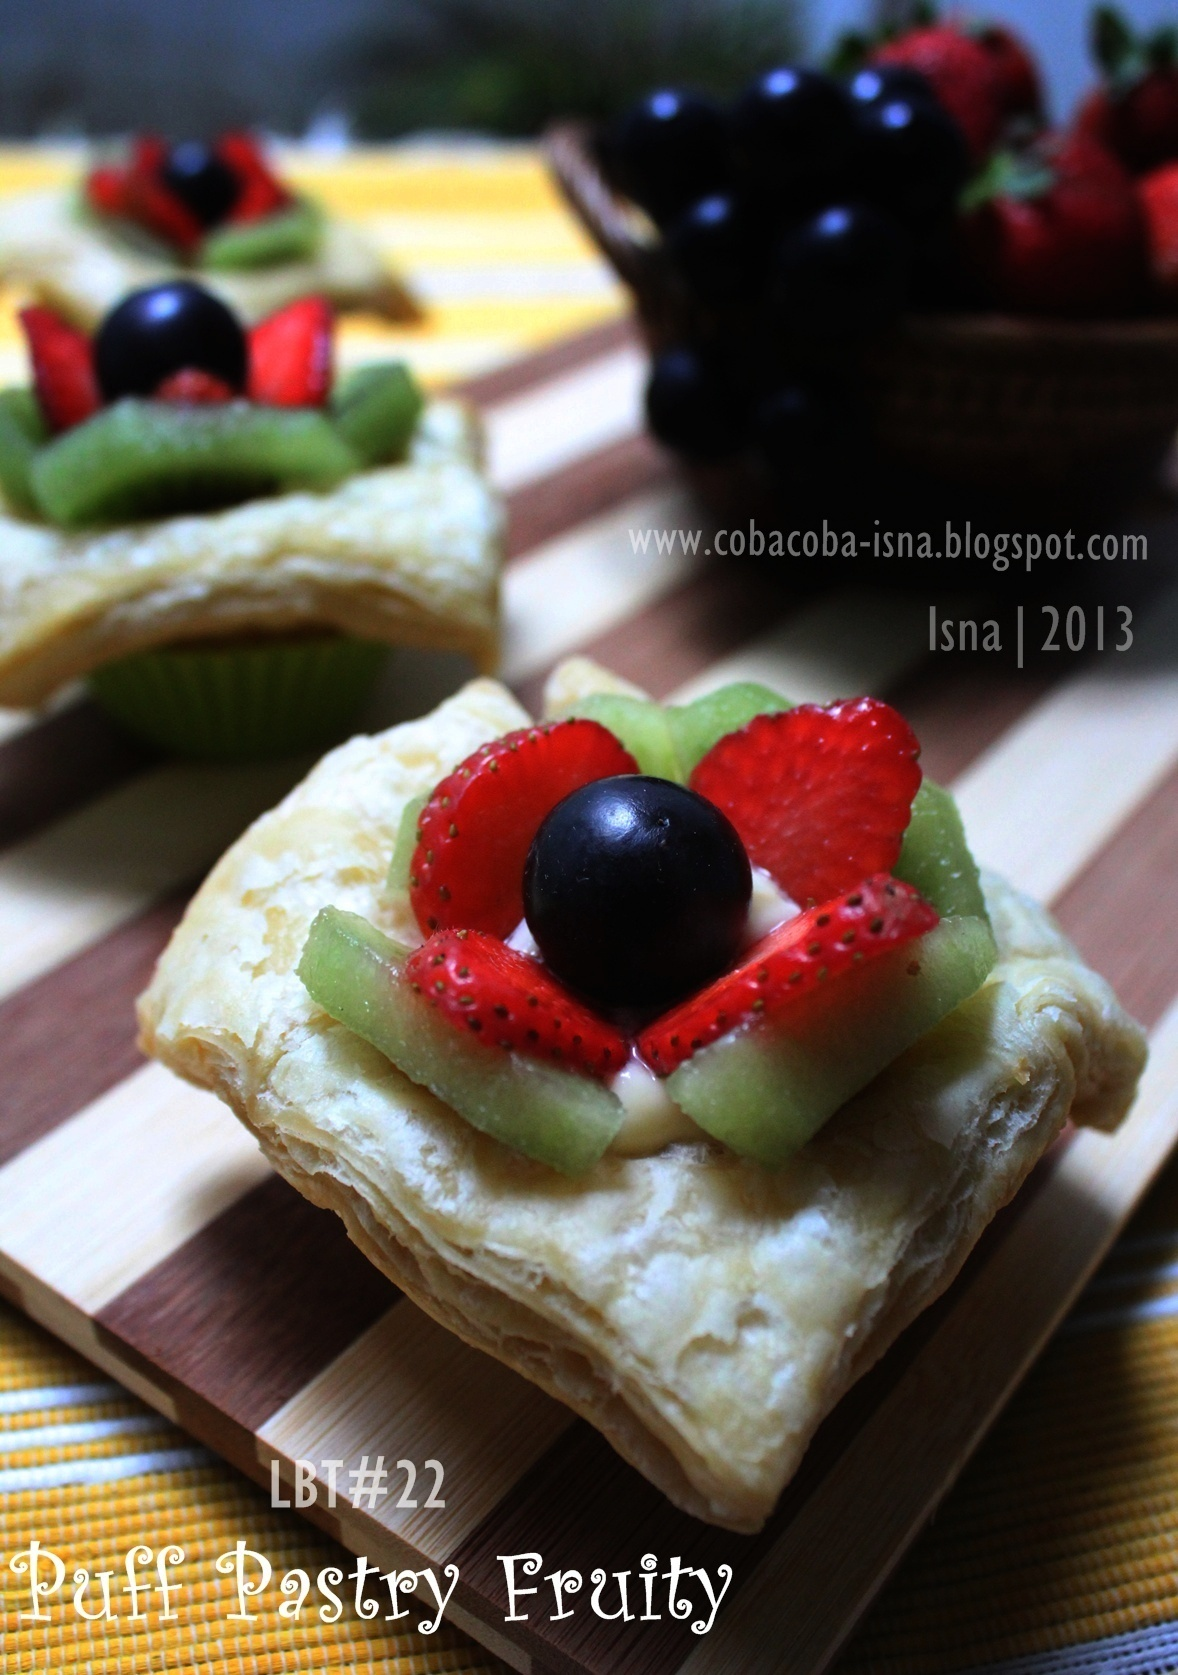 LBT#22 Puff Pastry Fruity